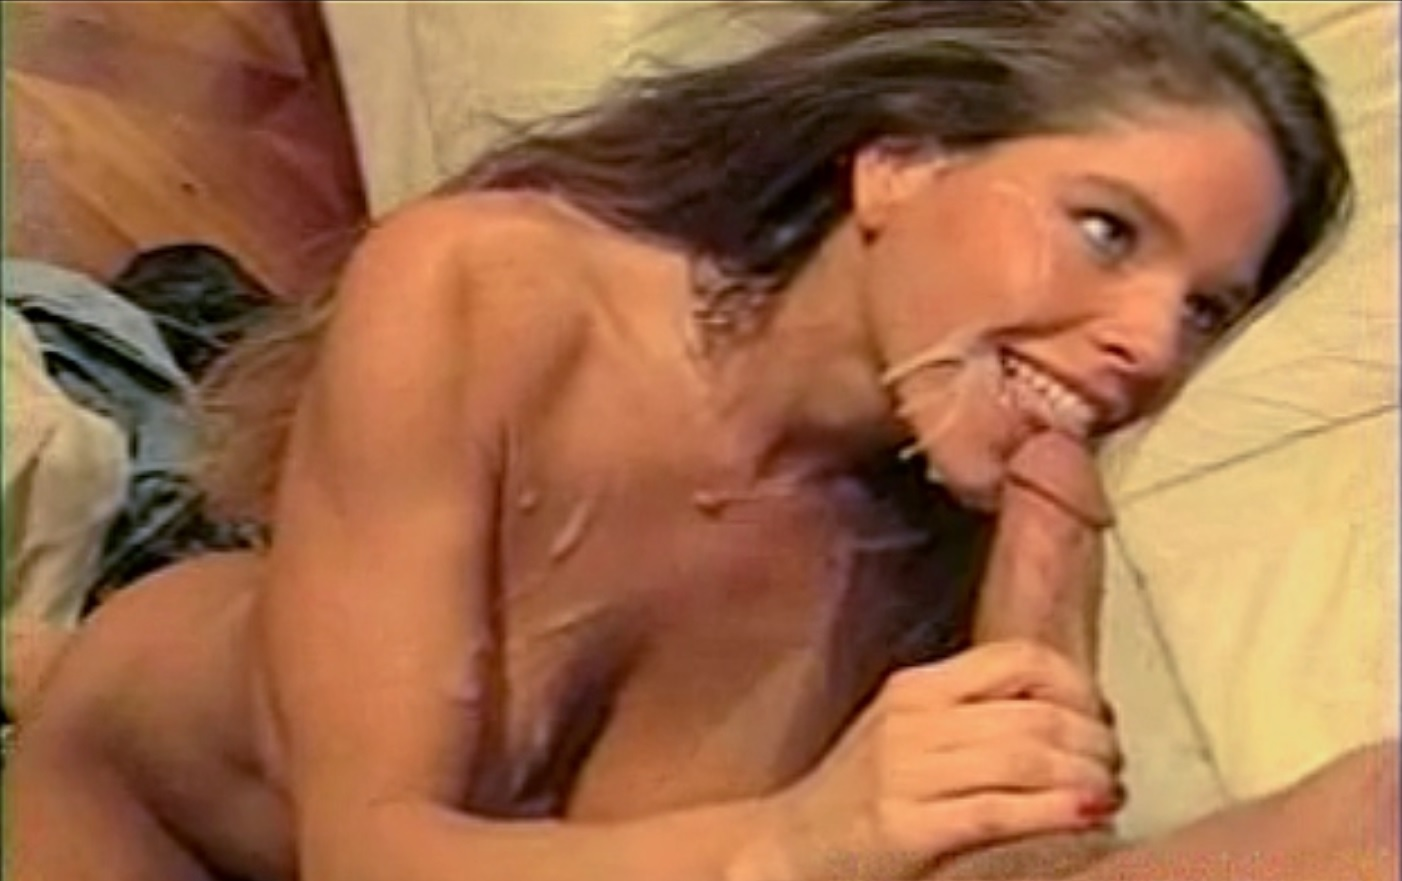 Hd fisting porn videos eporner XXX